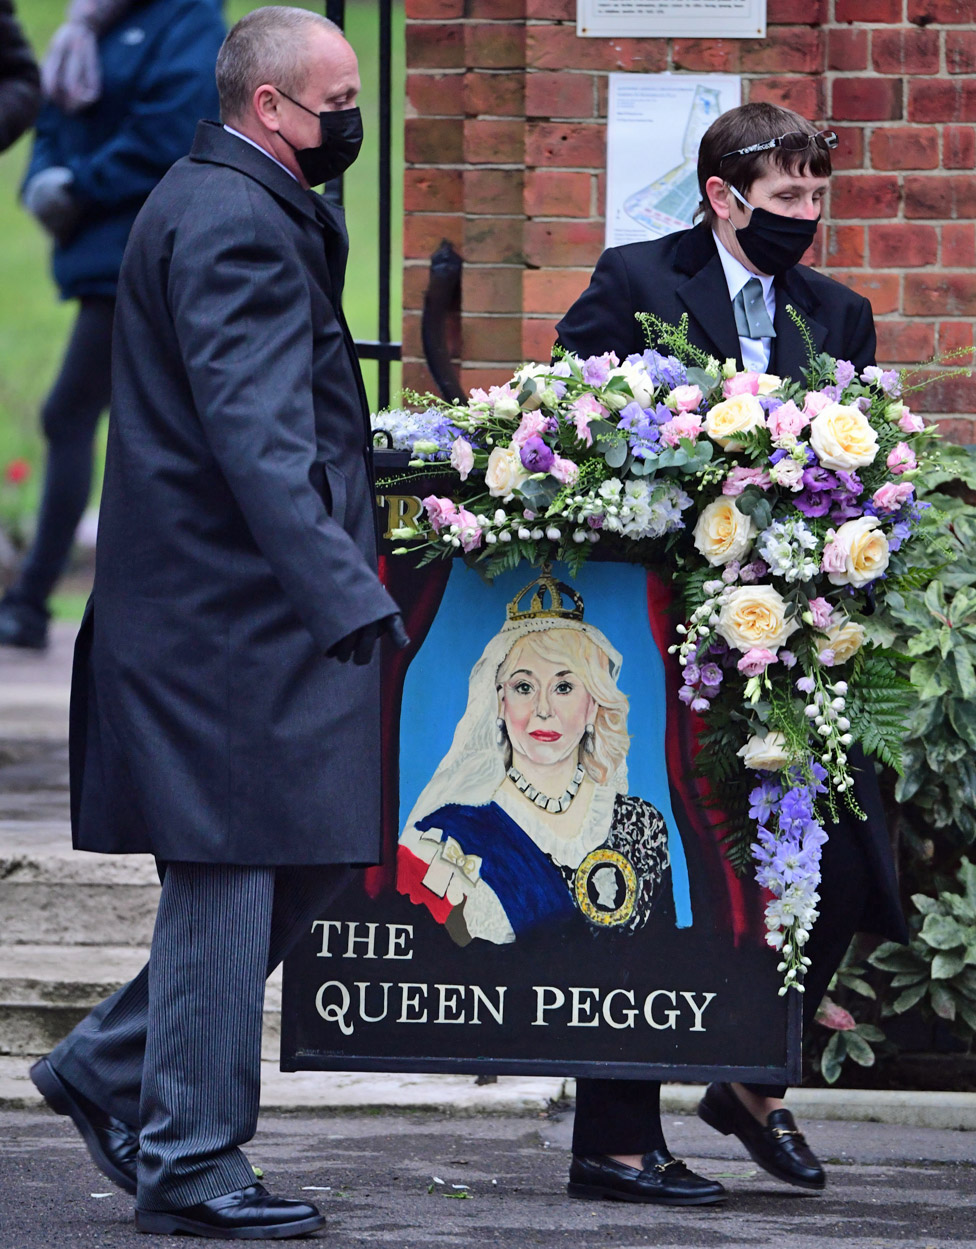 Dame Barbara Windsor's funeral held with 'Queen Peggy' tribute